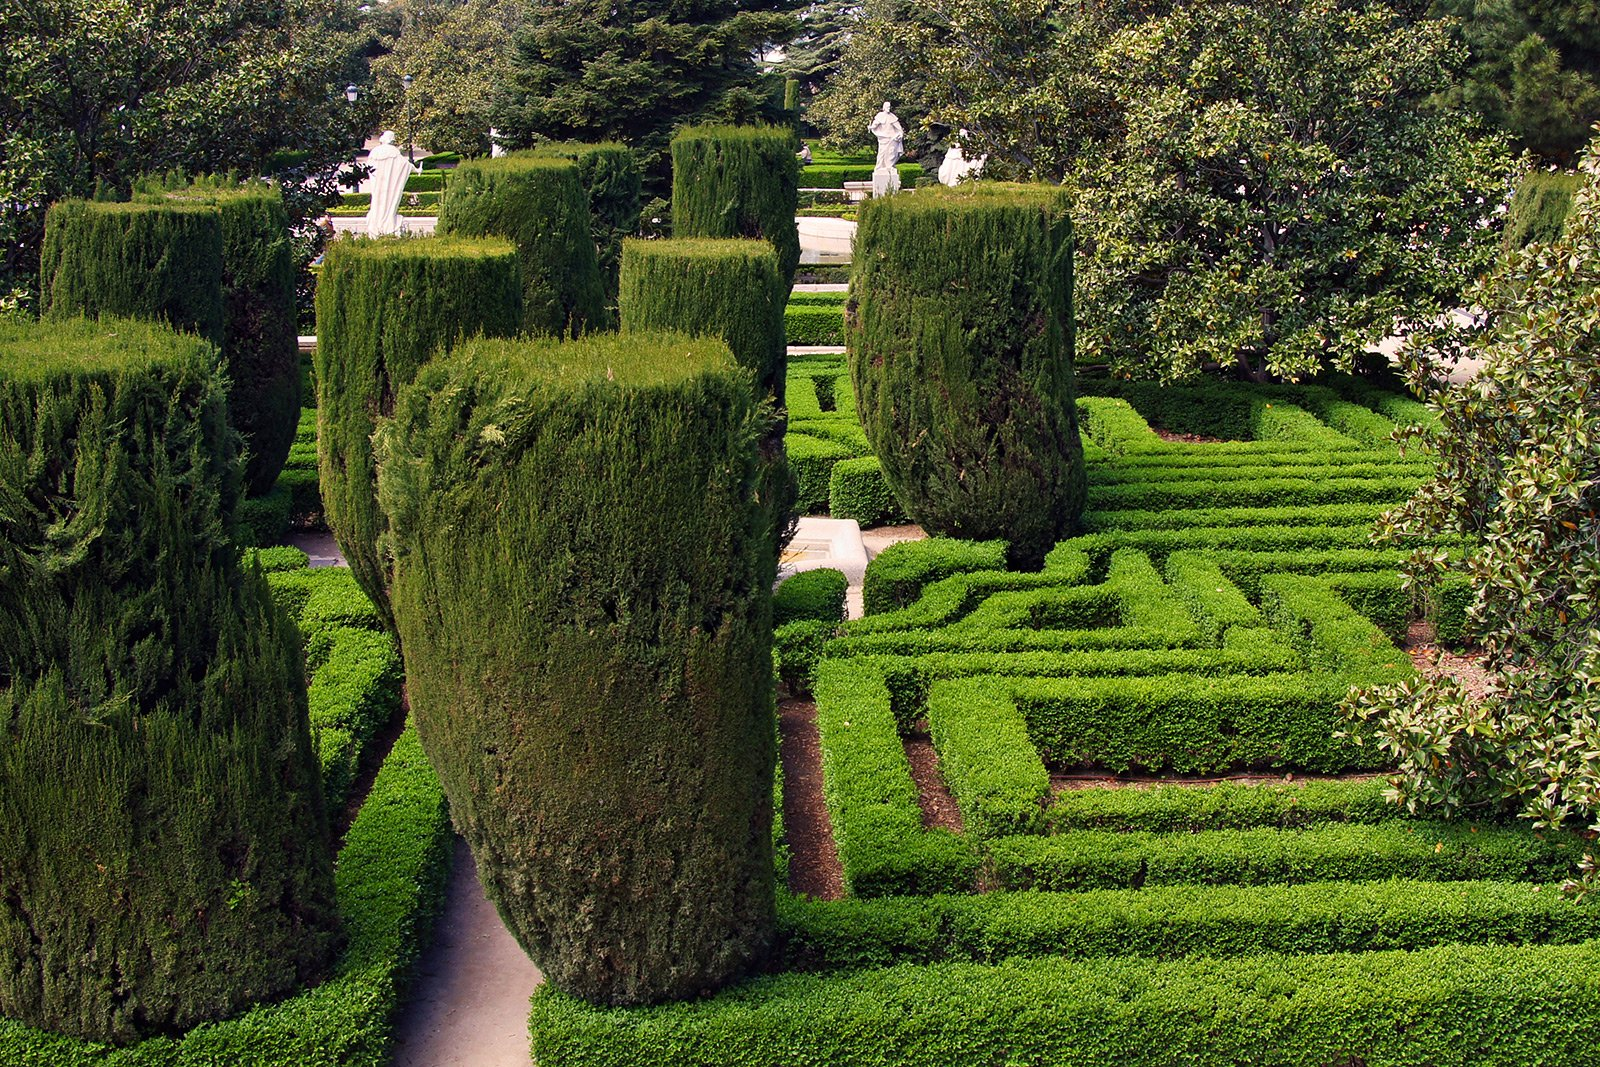 How to walk in the Sabatini Gardens in Madrid